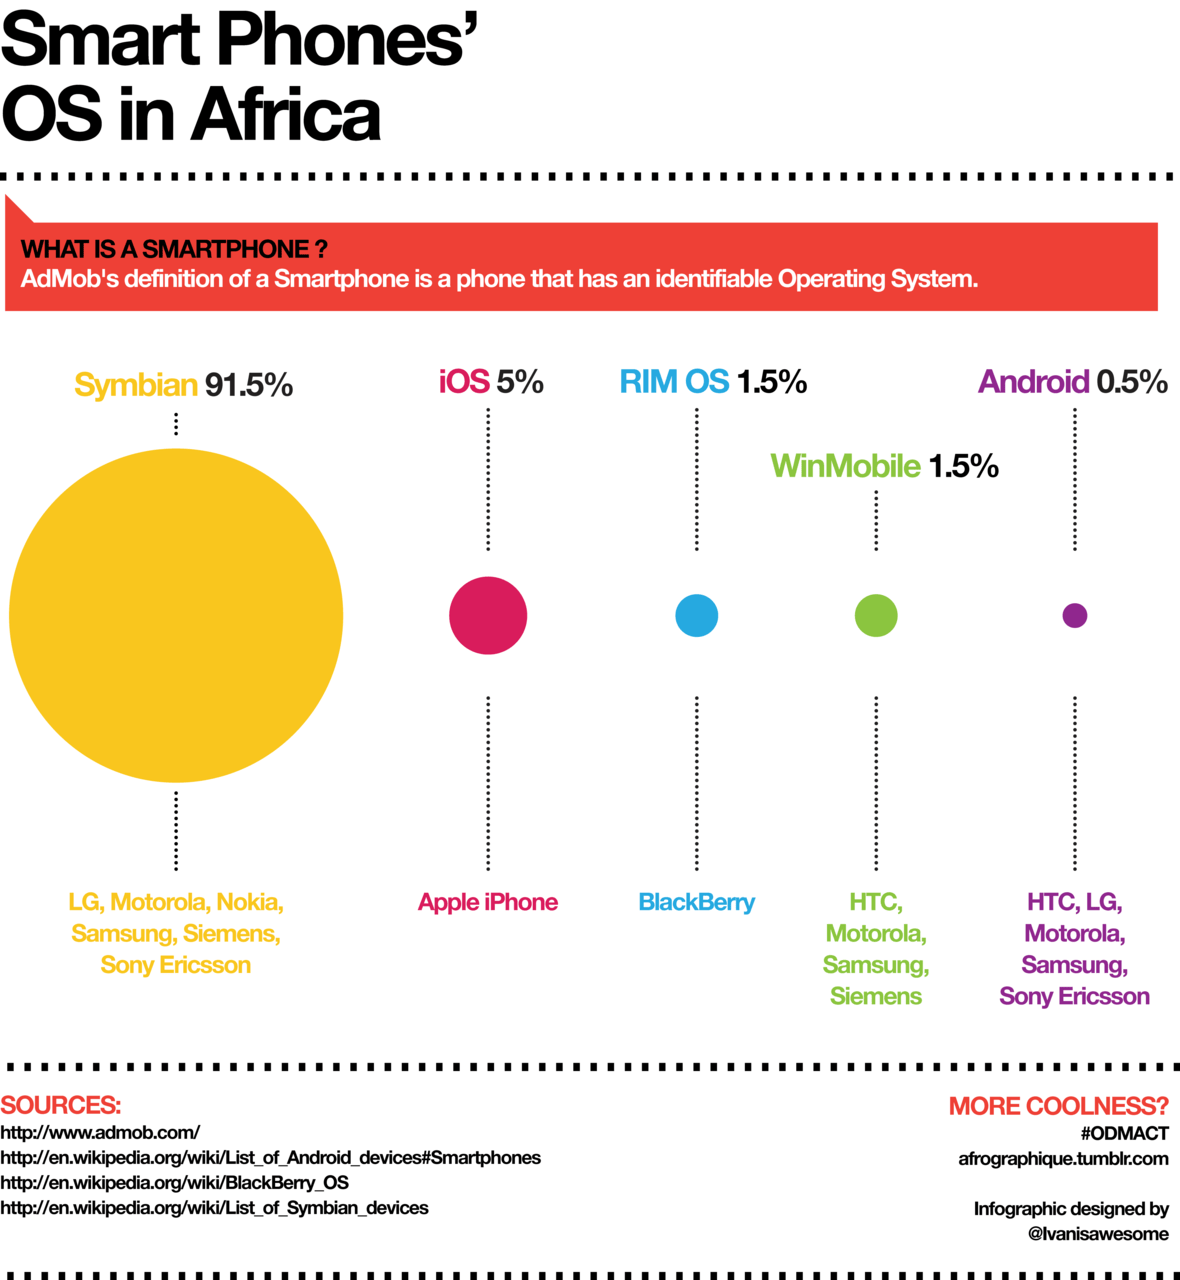 Infographic depicting the market share of various smart phone operating systems on the African continent.